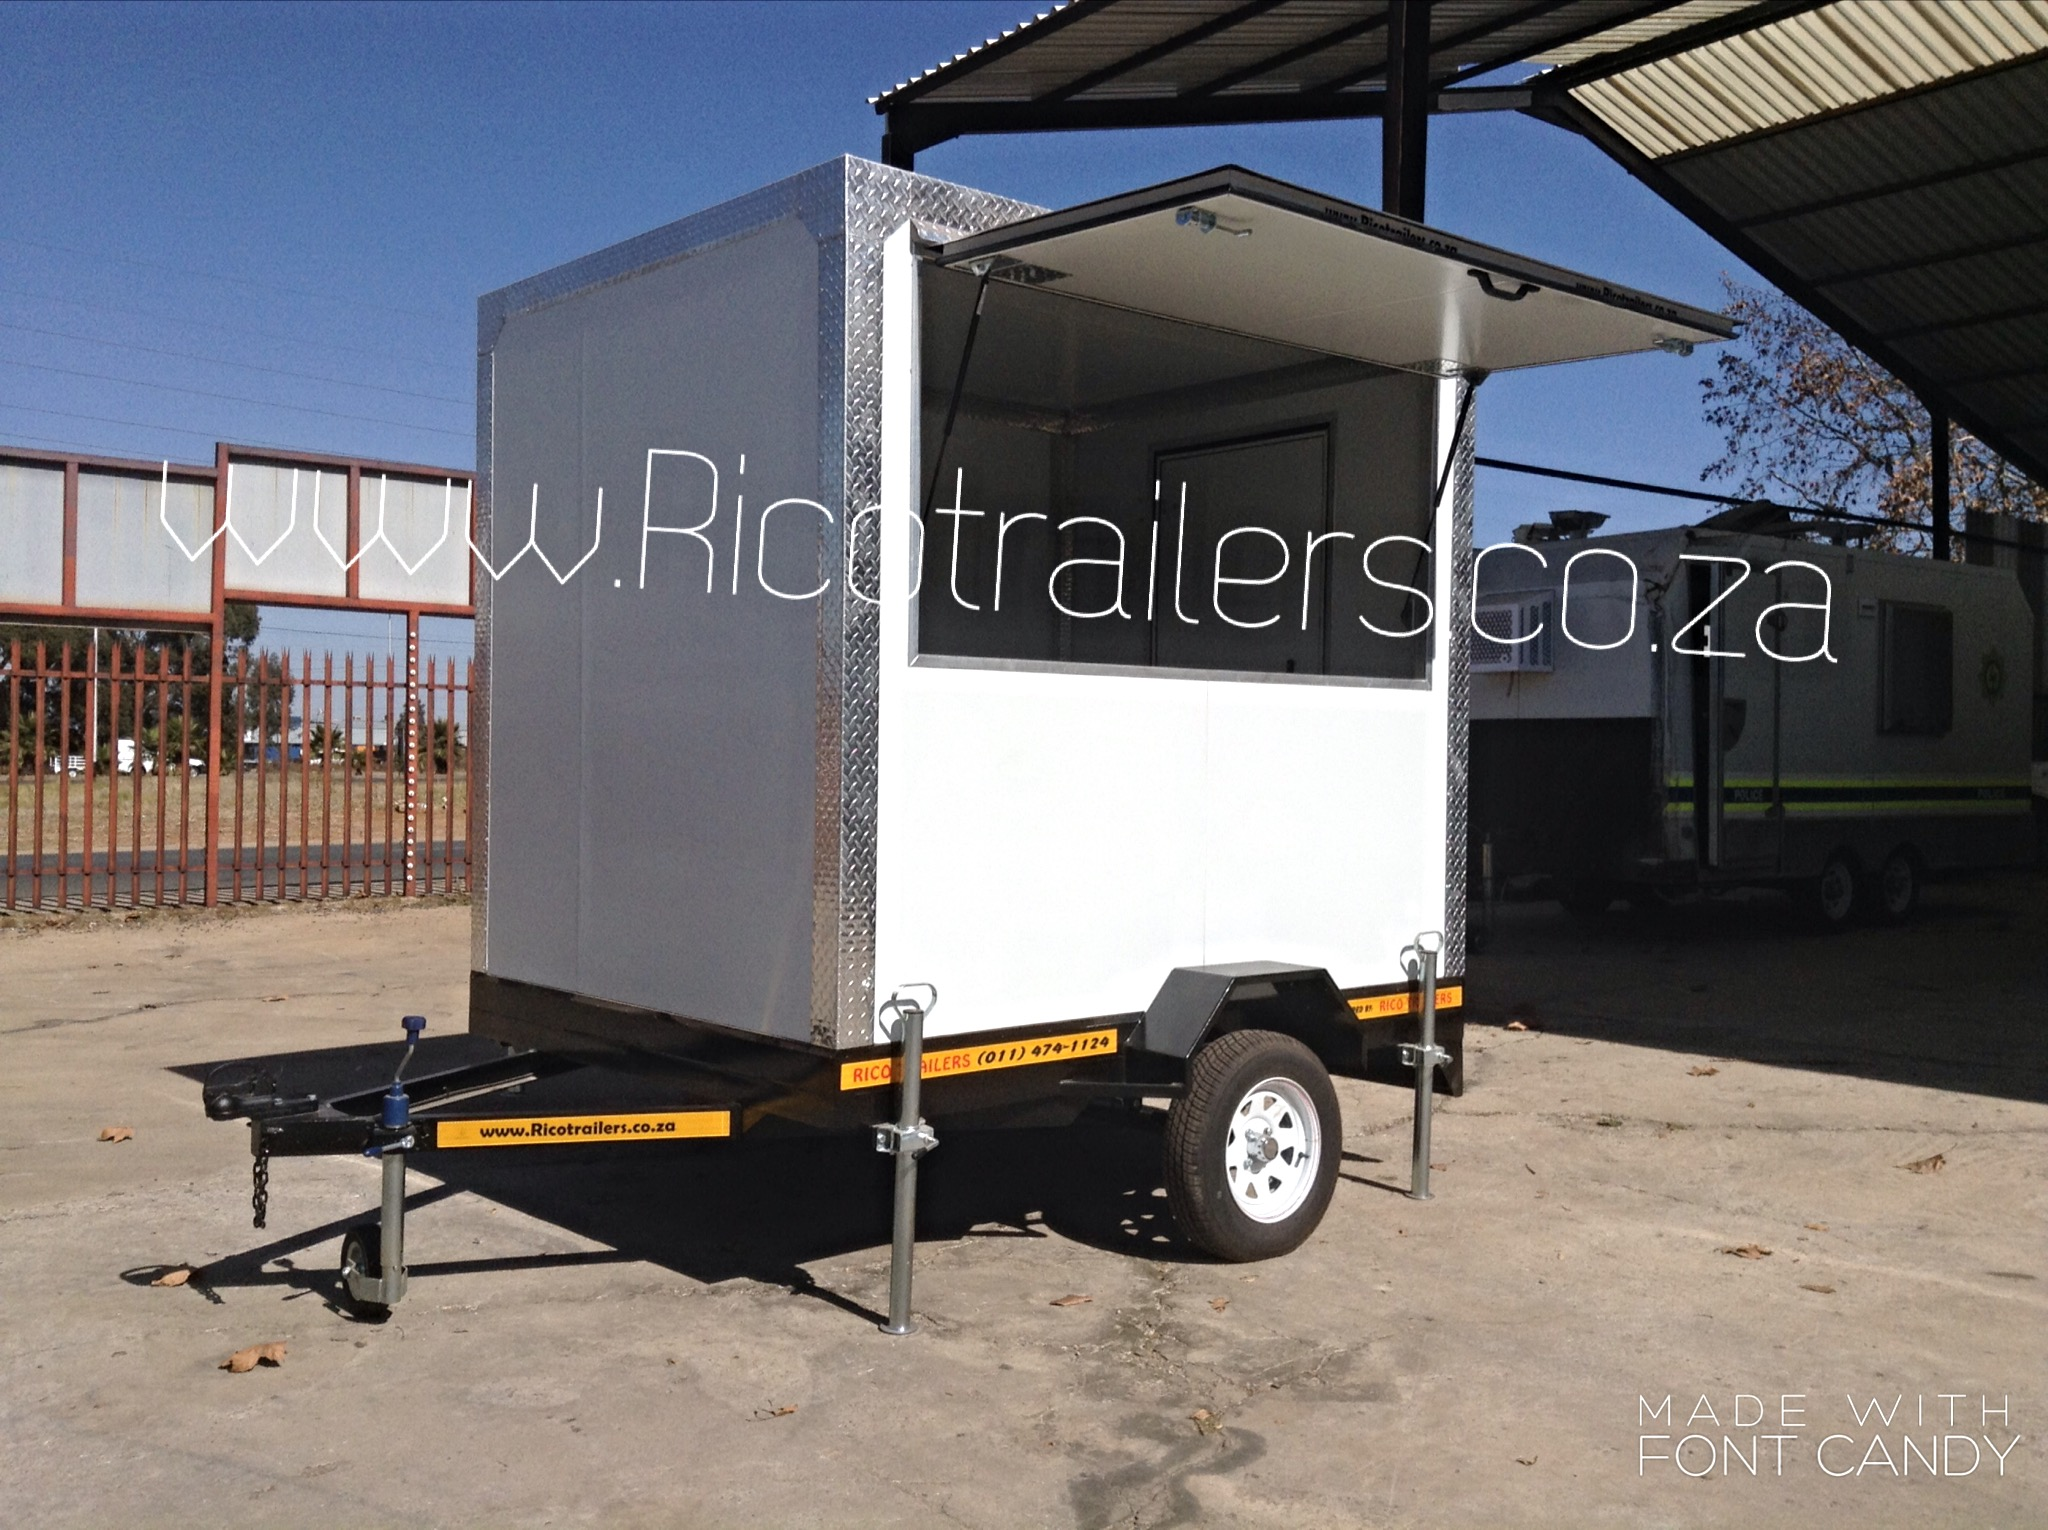 Mobile kitchen trailer for sale cheap johannesburg sa for Sa company kitchen